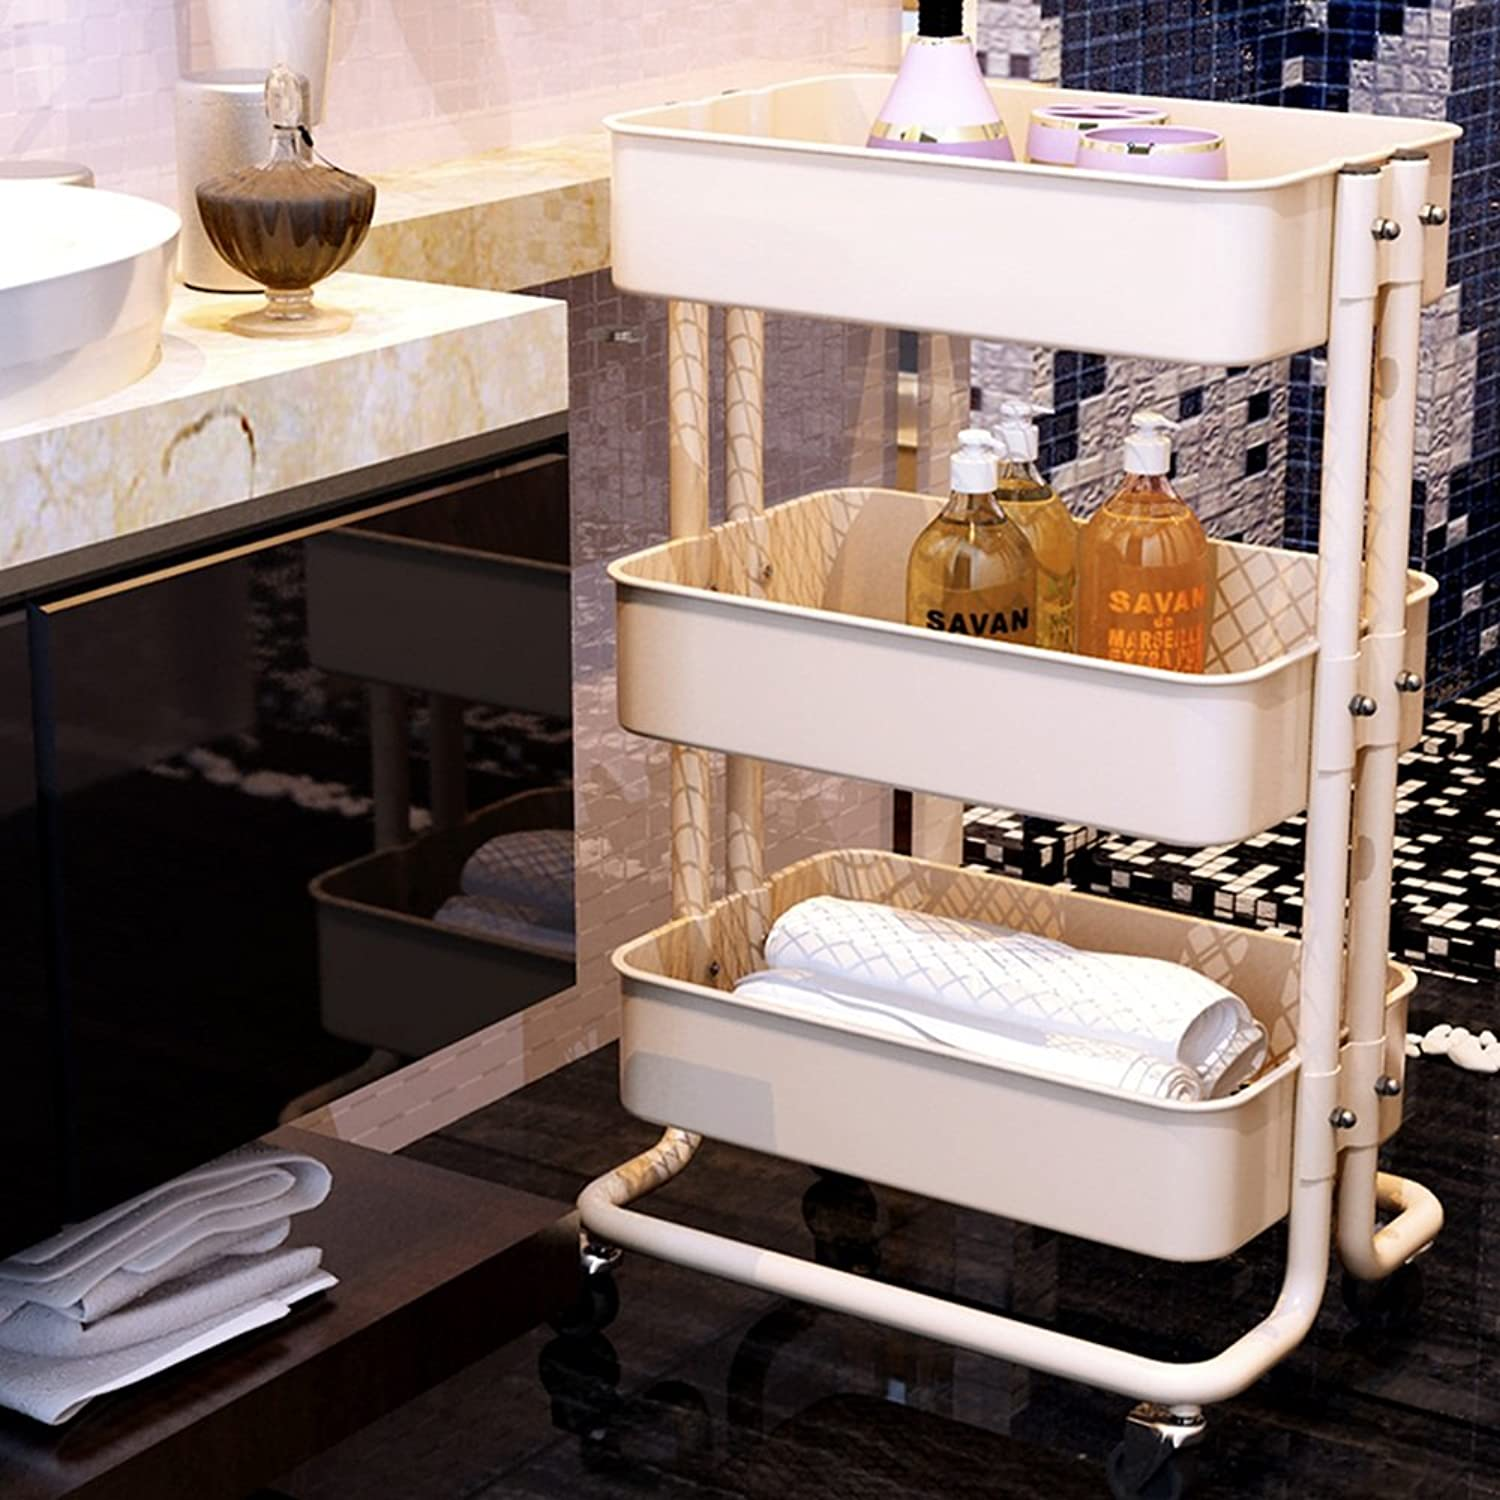 Kitchen Bathroom Carbon Steel Storage Rack, Floor Style Three Layers Storage Rack with Wheel -by TIANTA (color   Beige)